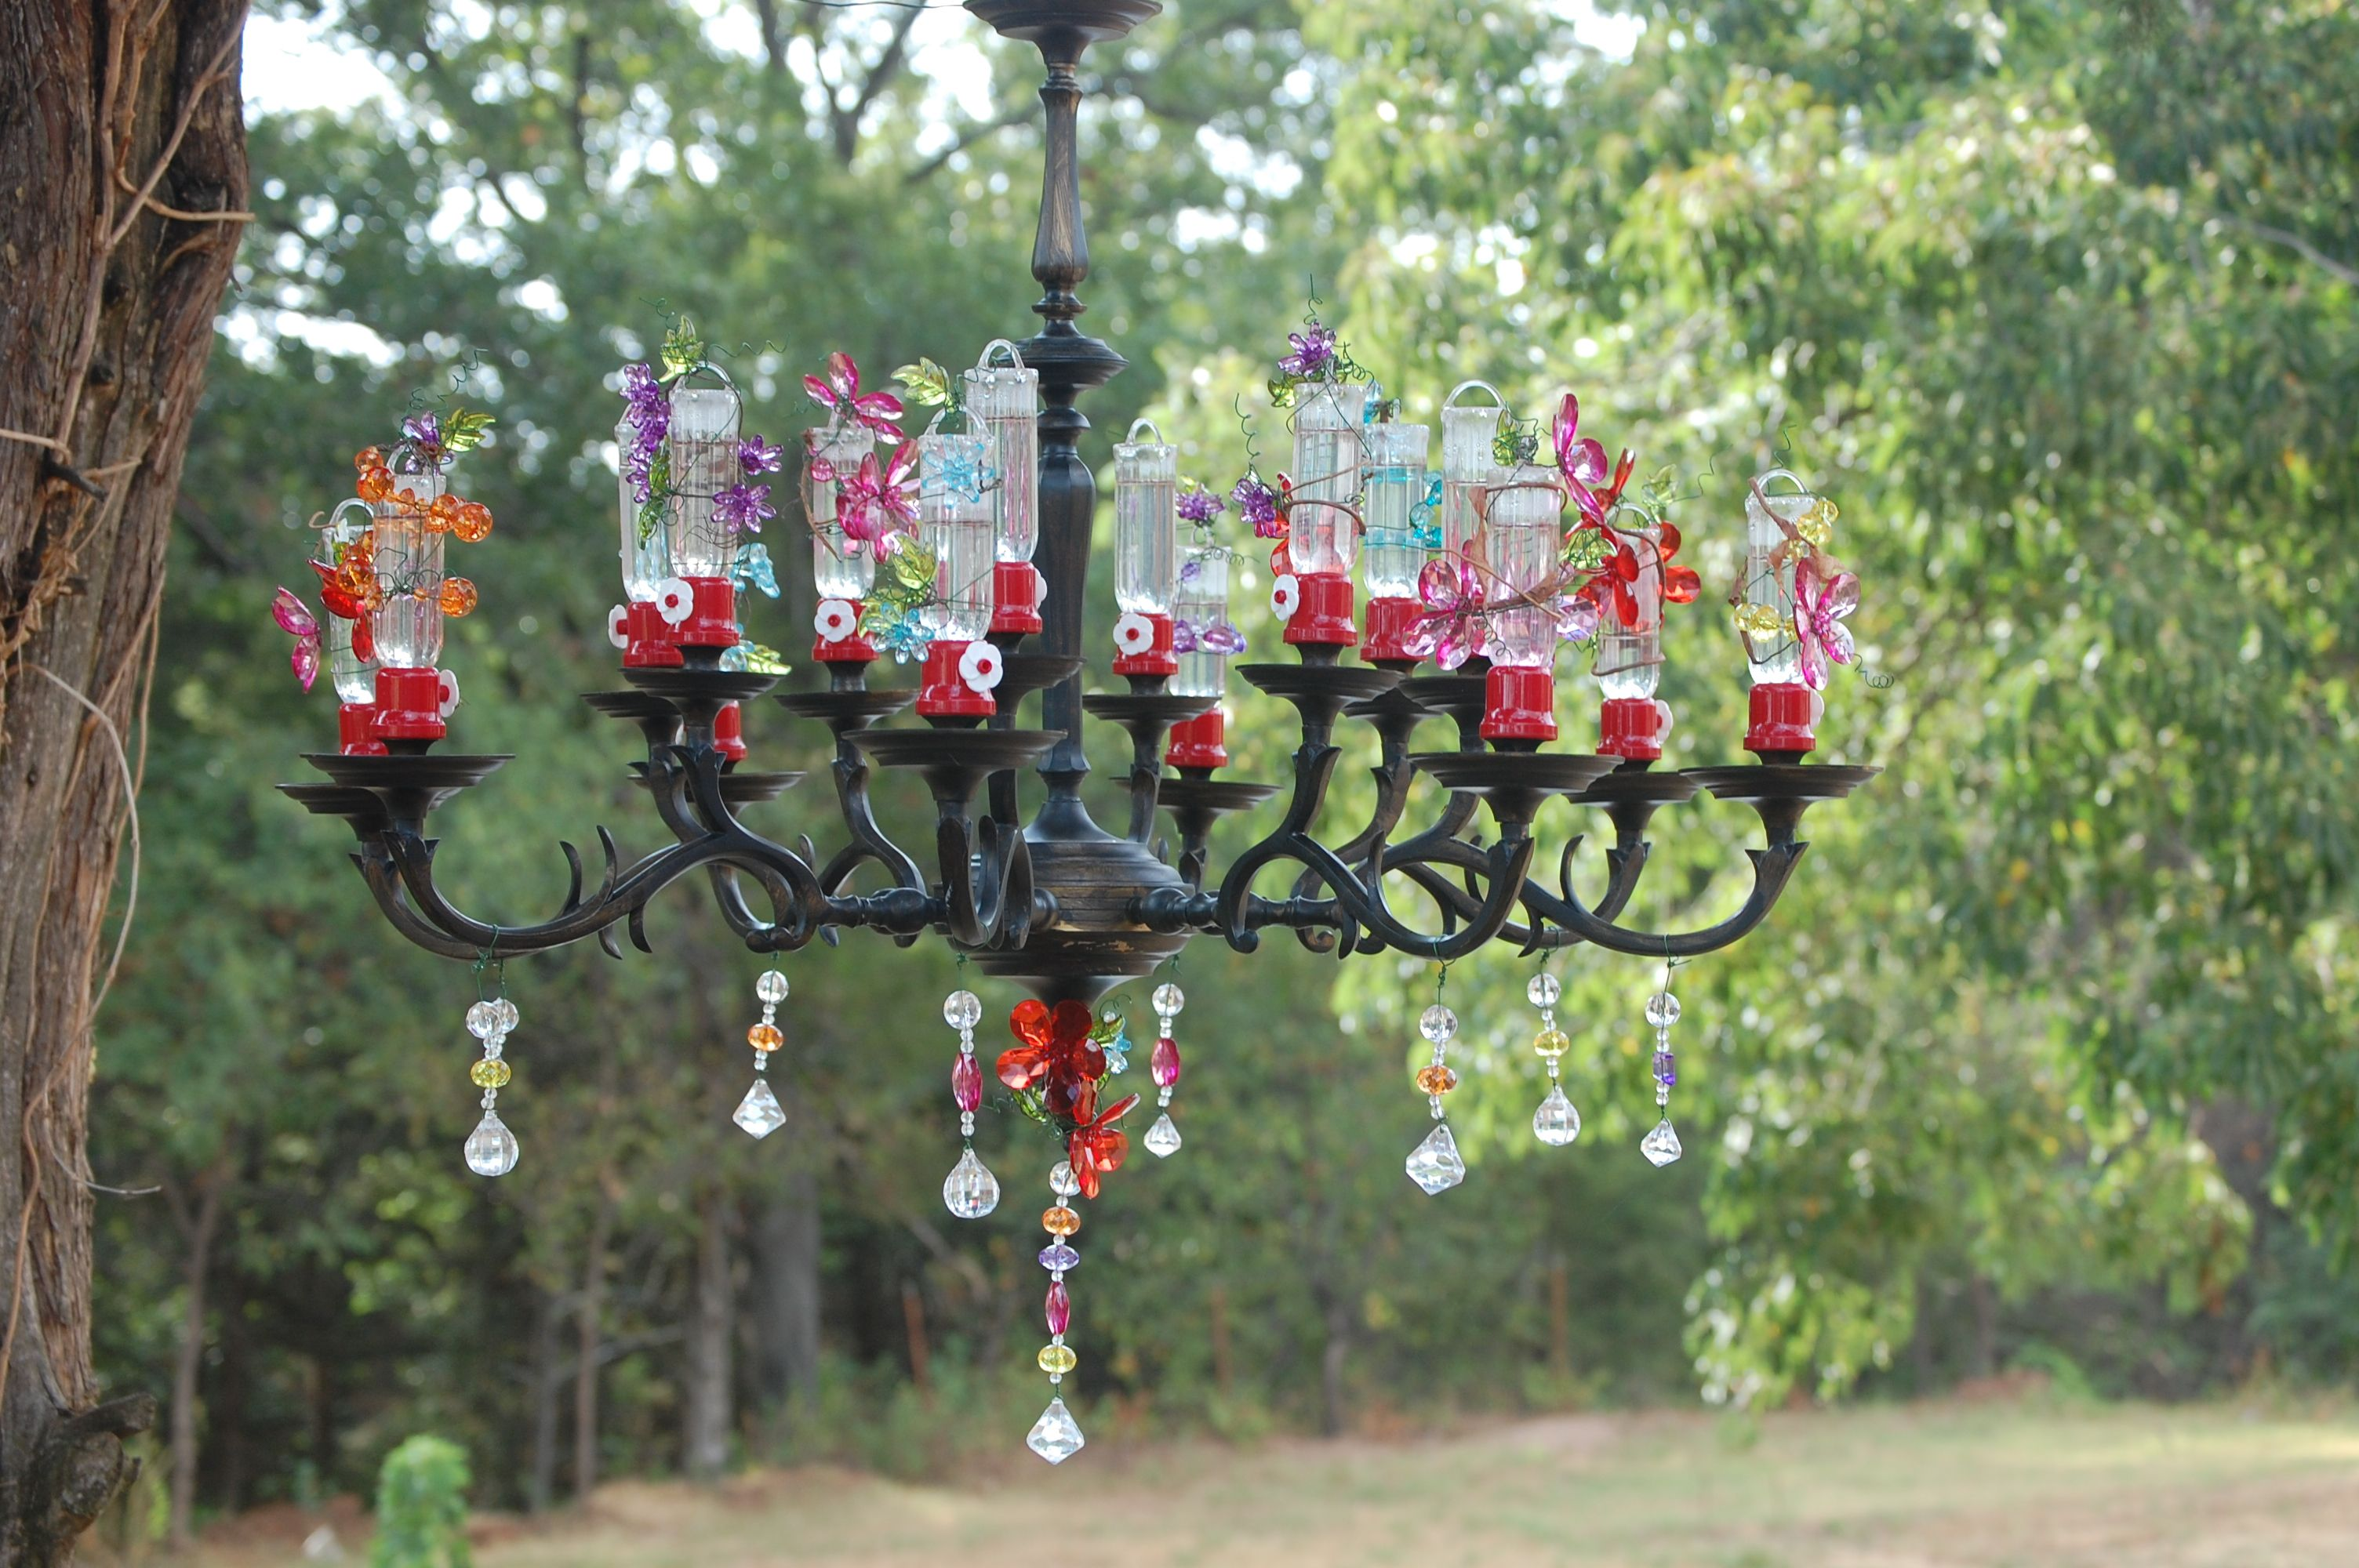 recycled design cozy of cylindrical glass decorative modern feeders made hummingbird bright image for feeder full